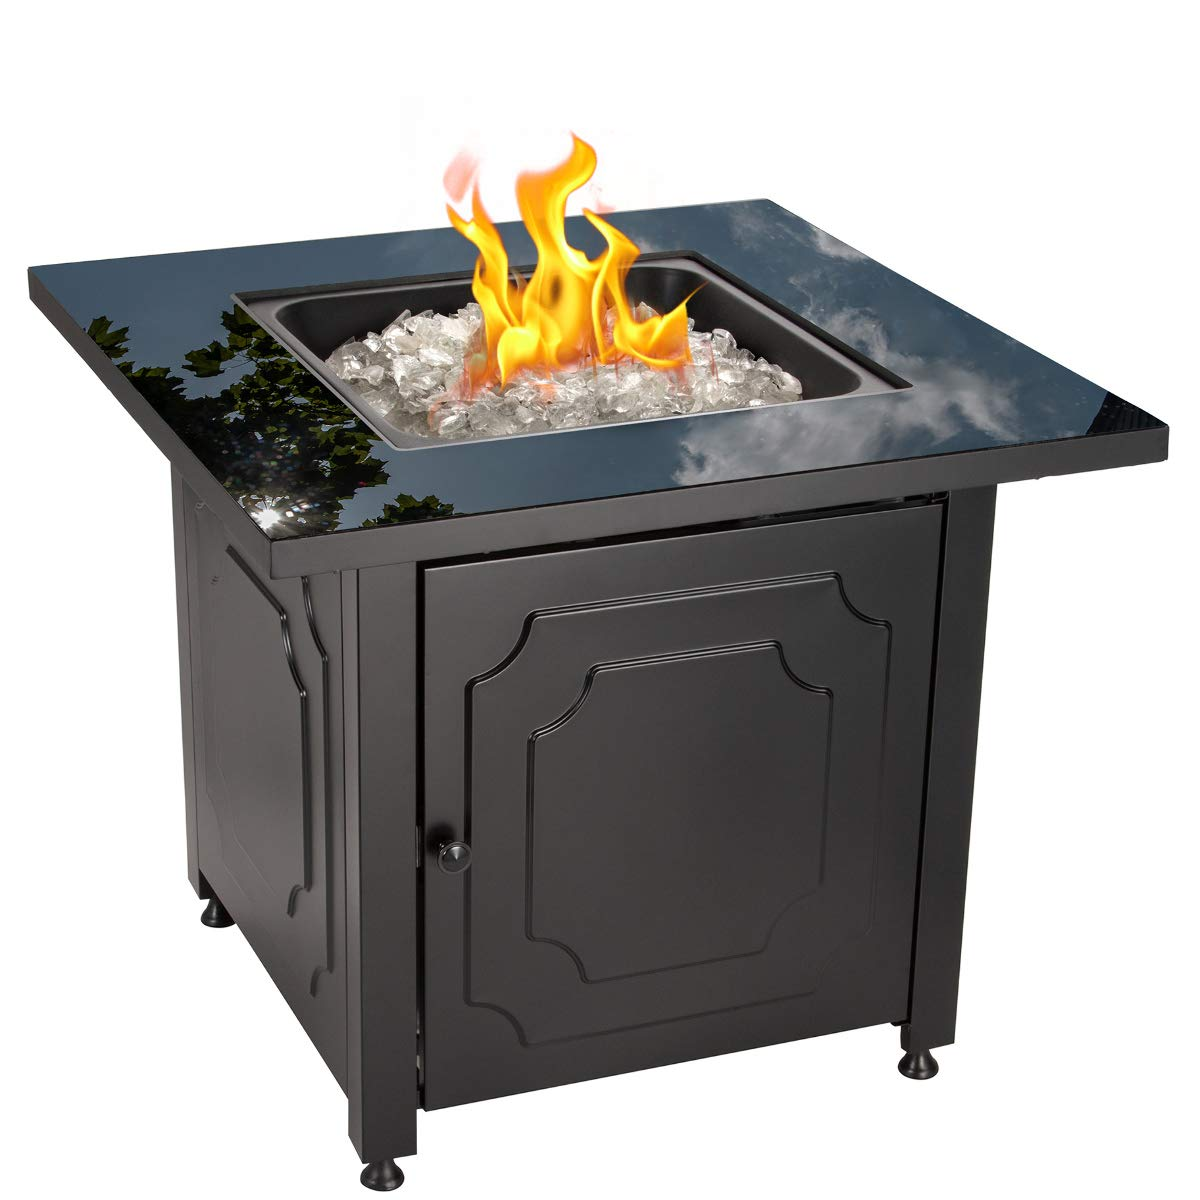 Blue Rhino Outdoor Propane Gas Fire Pit with Black Glass Top and White Fire Glass – Add Warmth and Beauty to Your Backyard